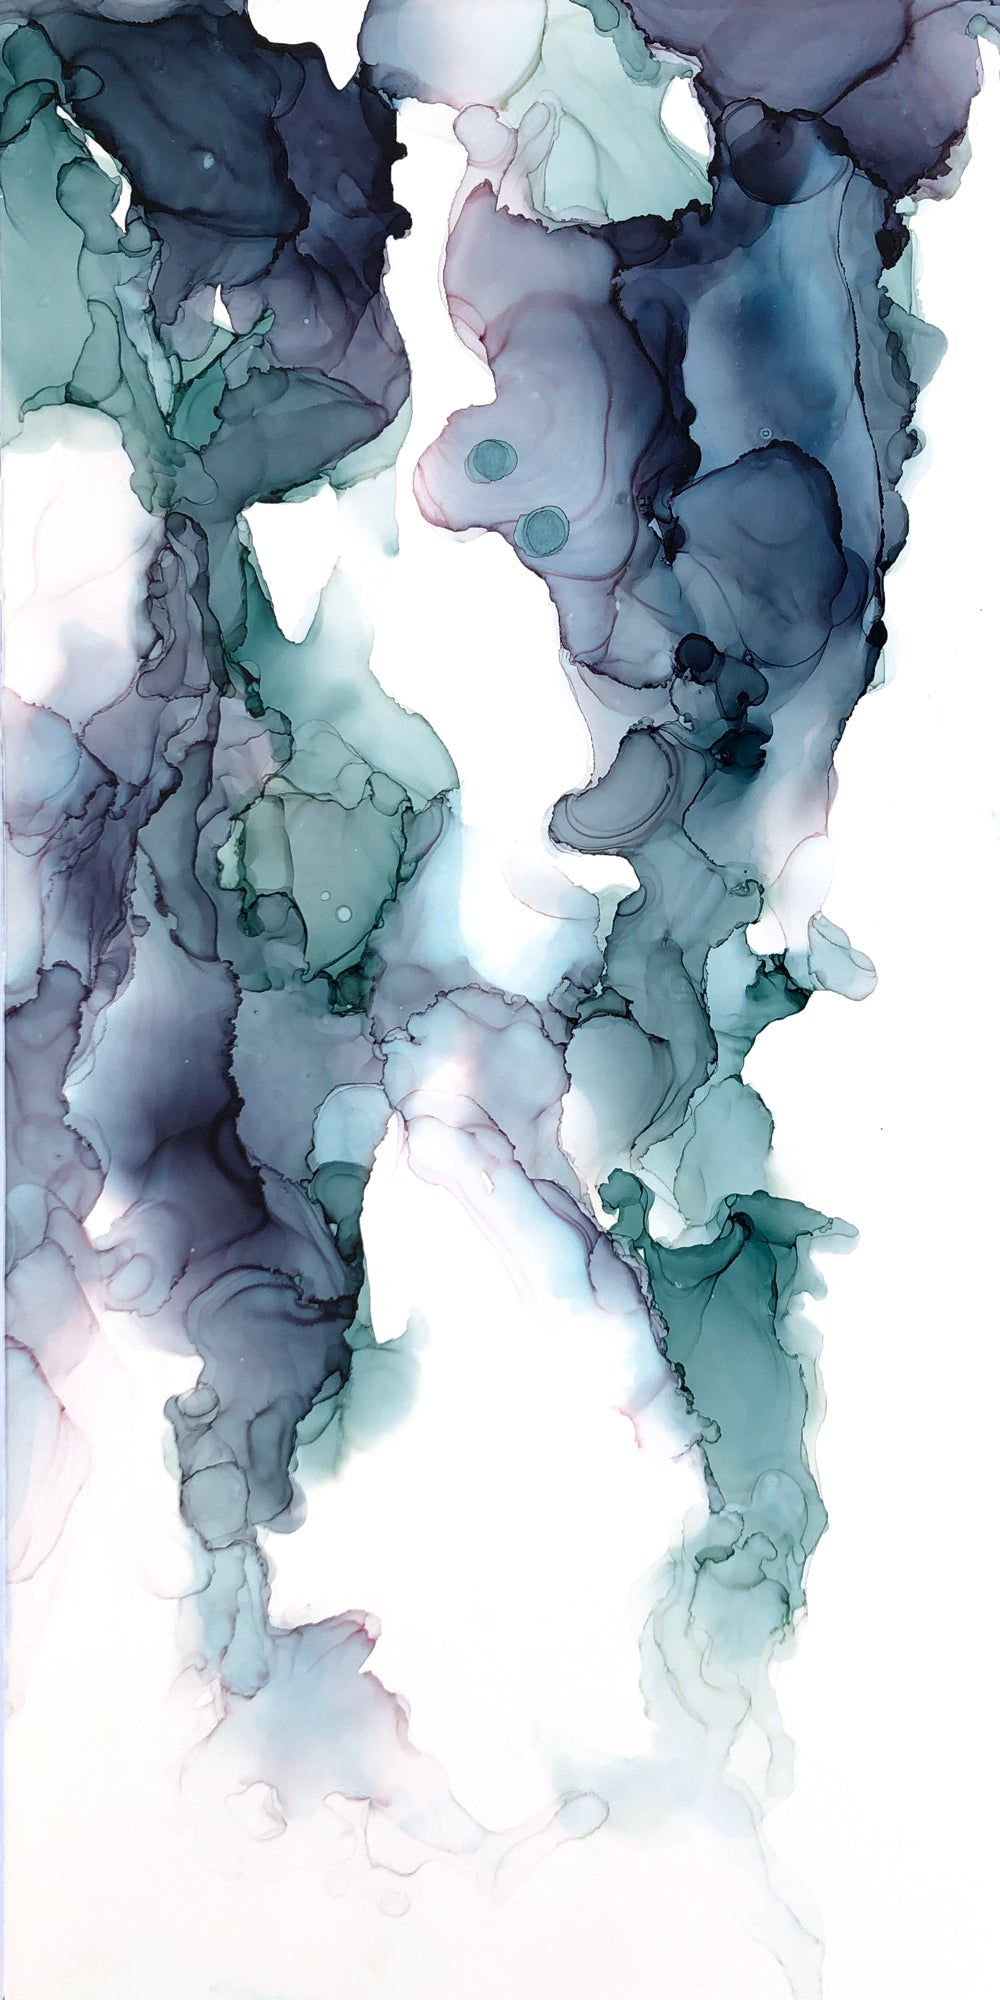 teal, indigo, hints of green alcohol ink abstract painting 8x16 original flowing abstract art